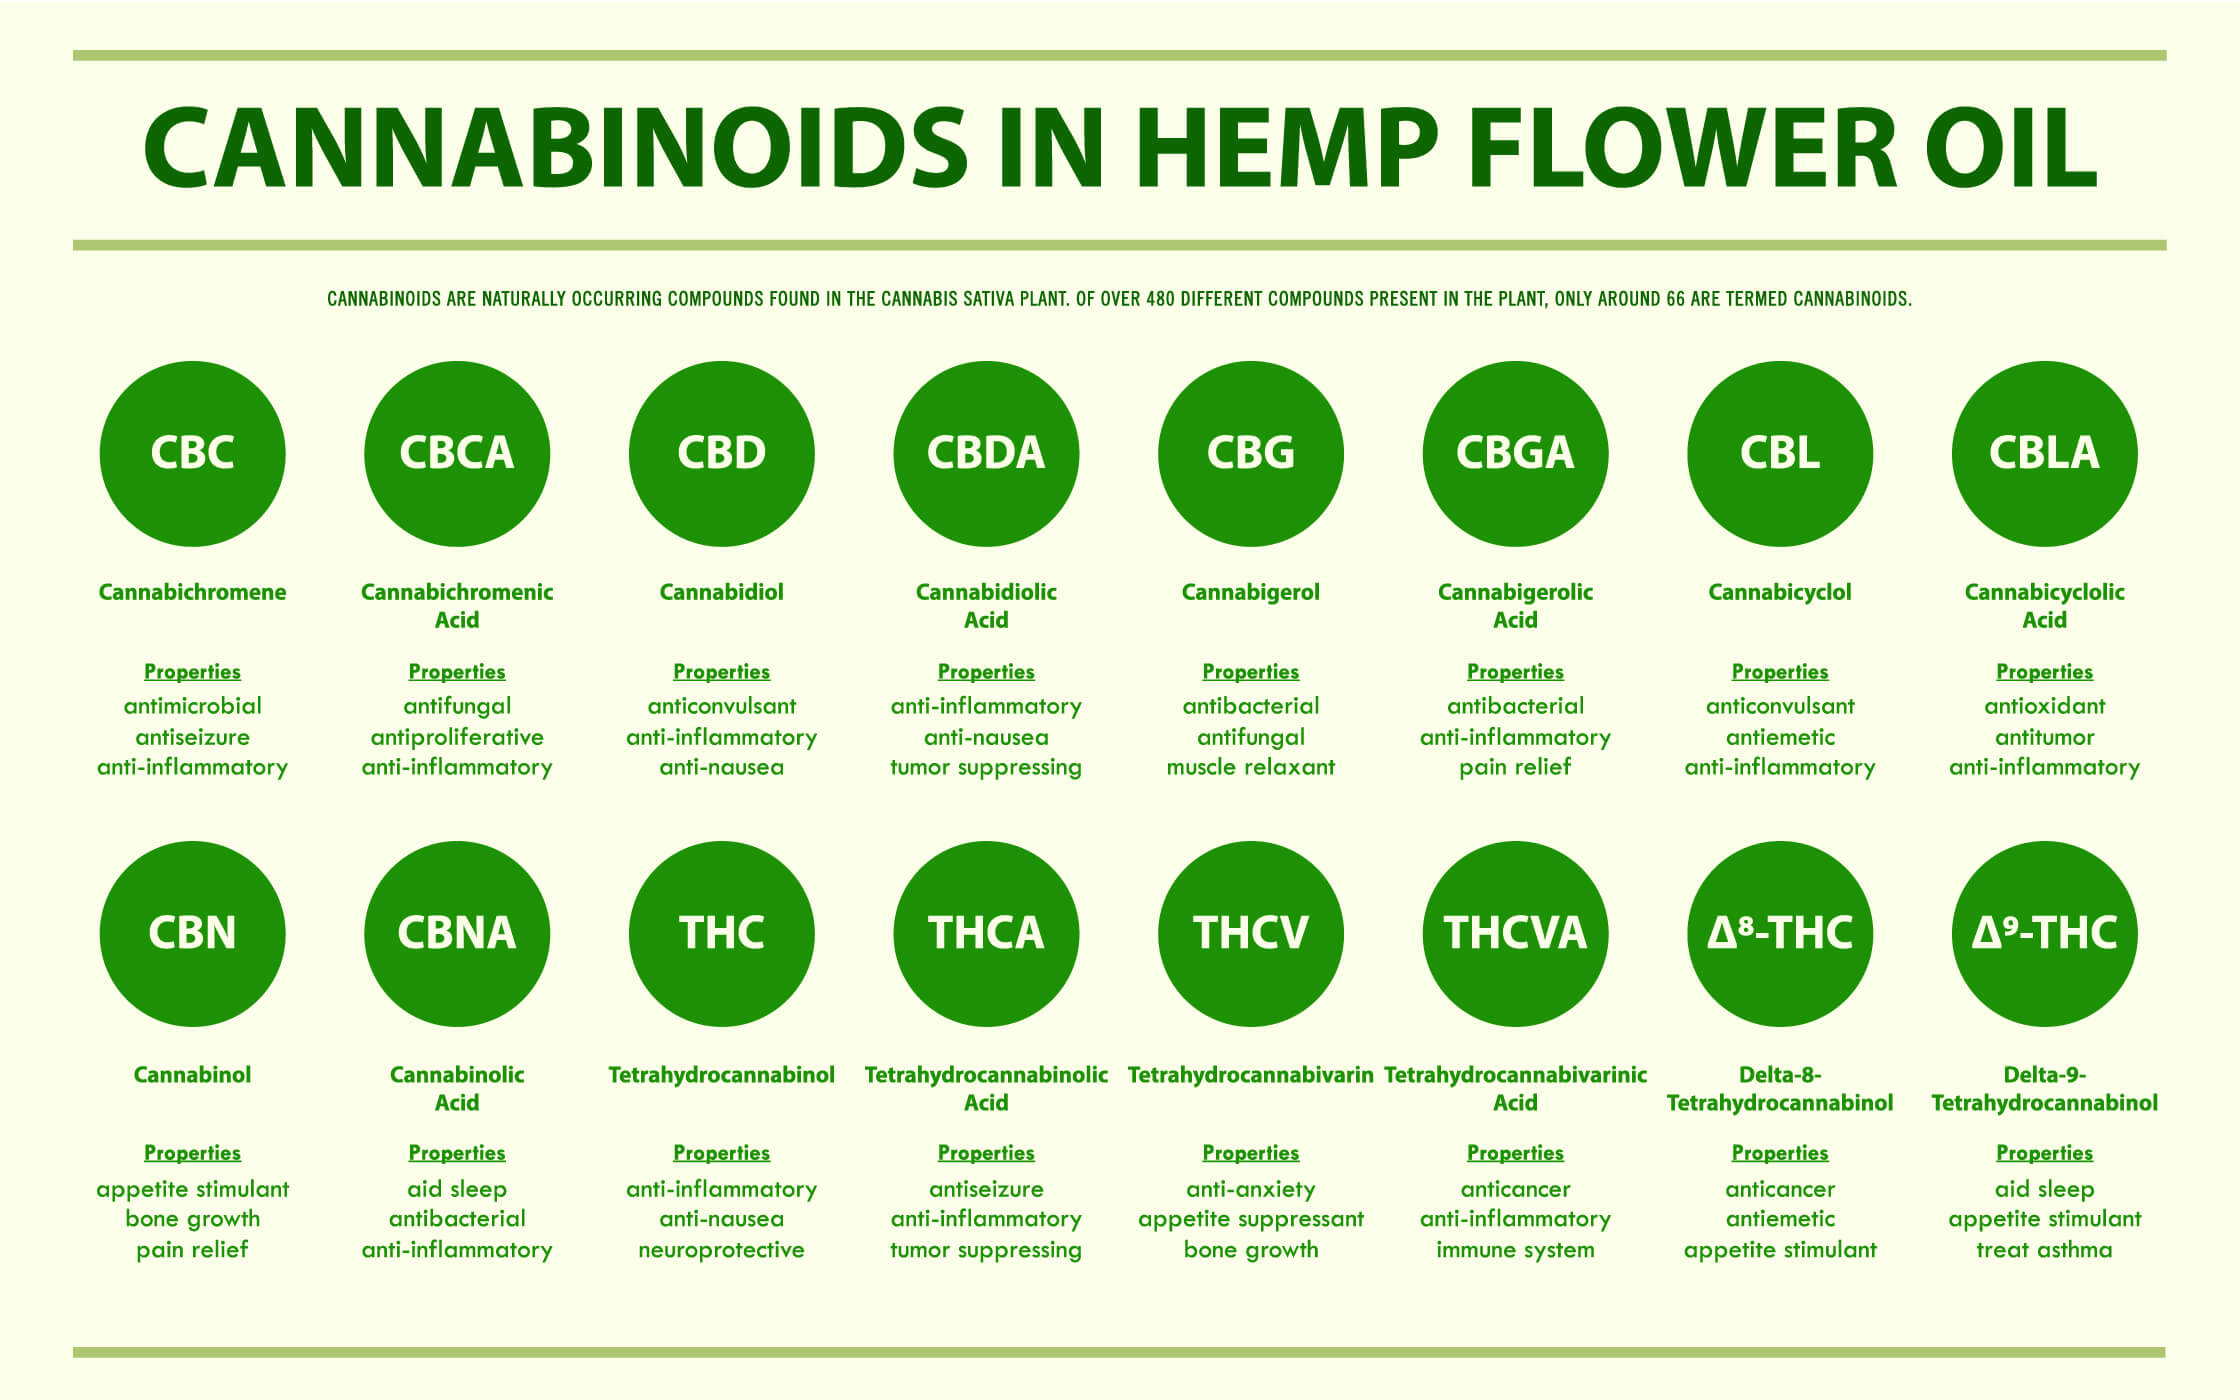 CBD OIL HEMP PLANT CANNABINOIDS